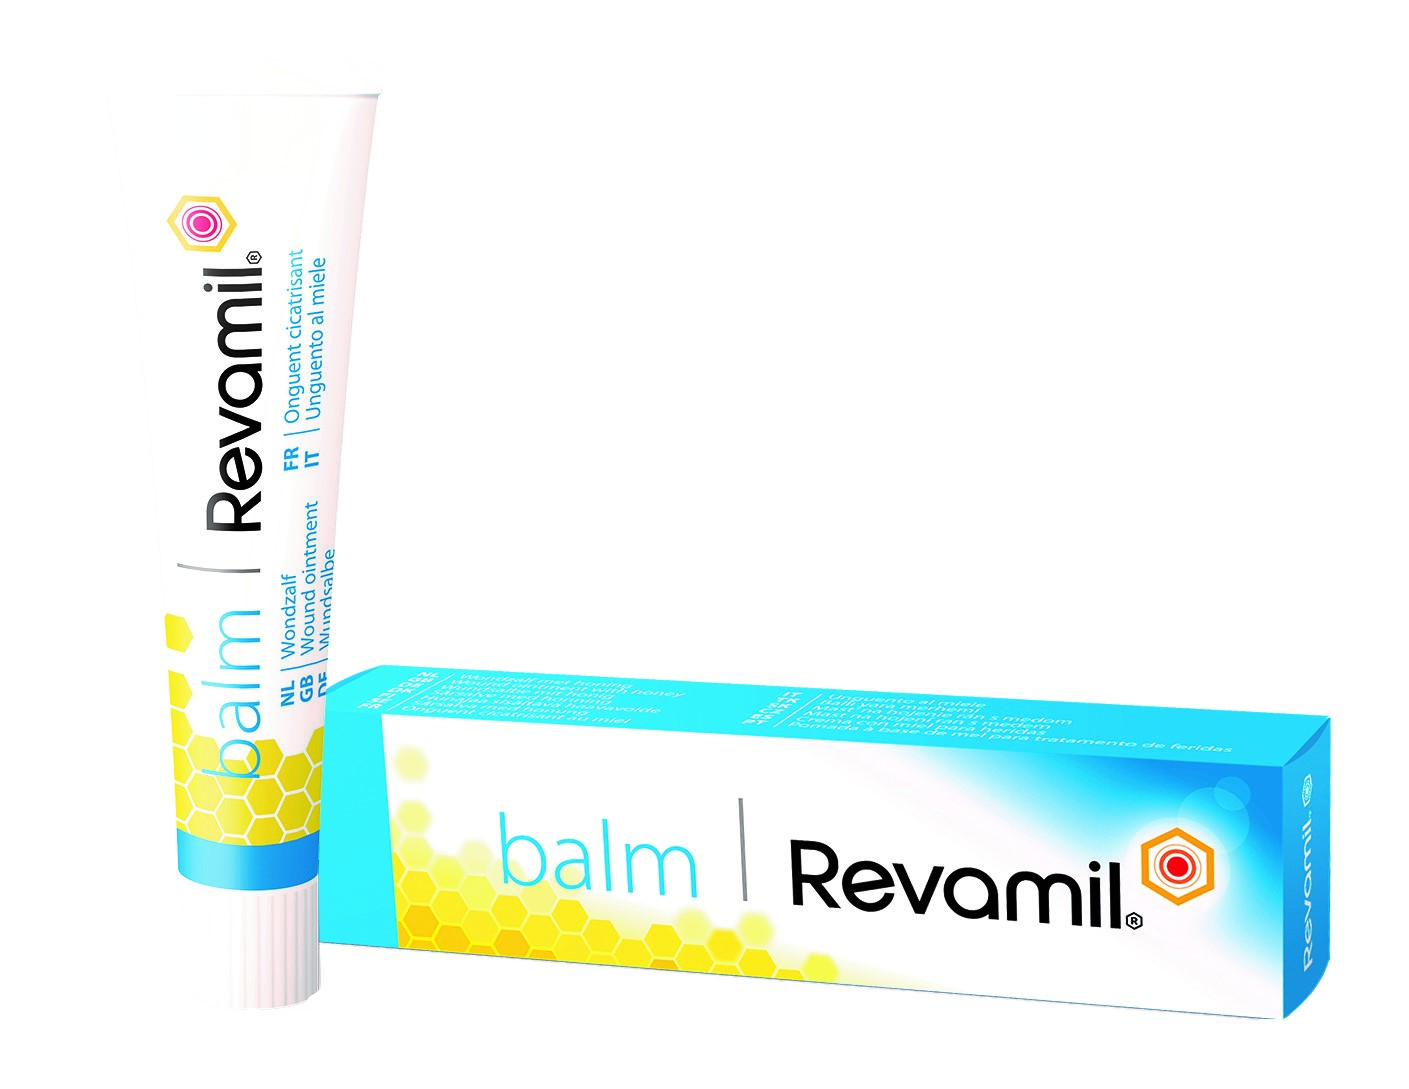 Revamil Honey Balm